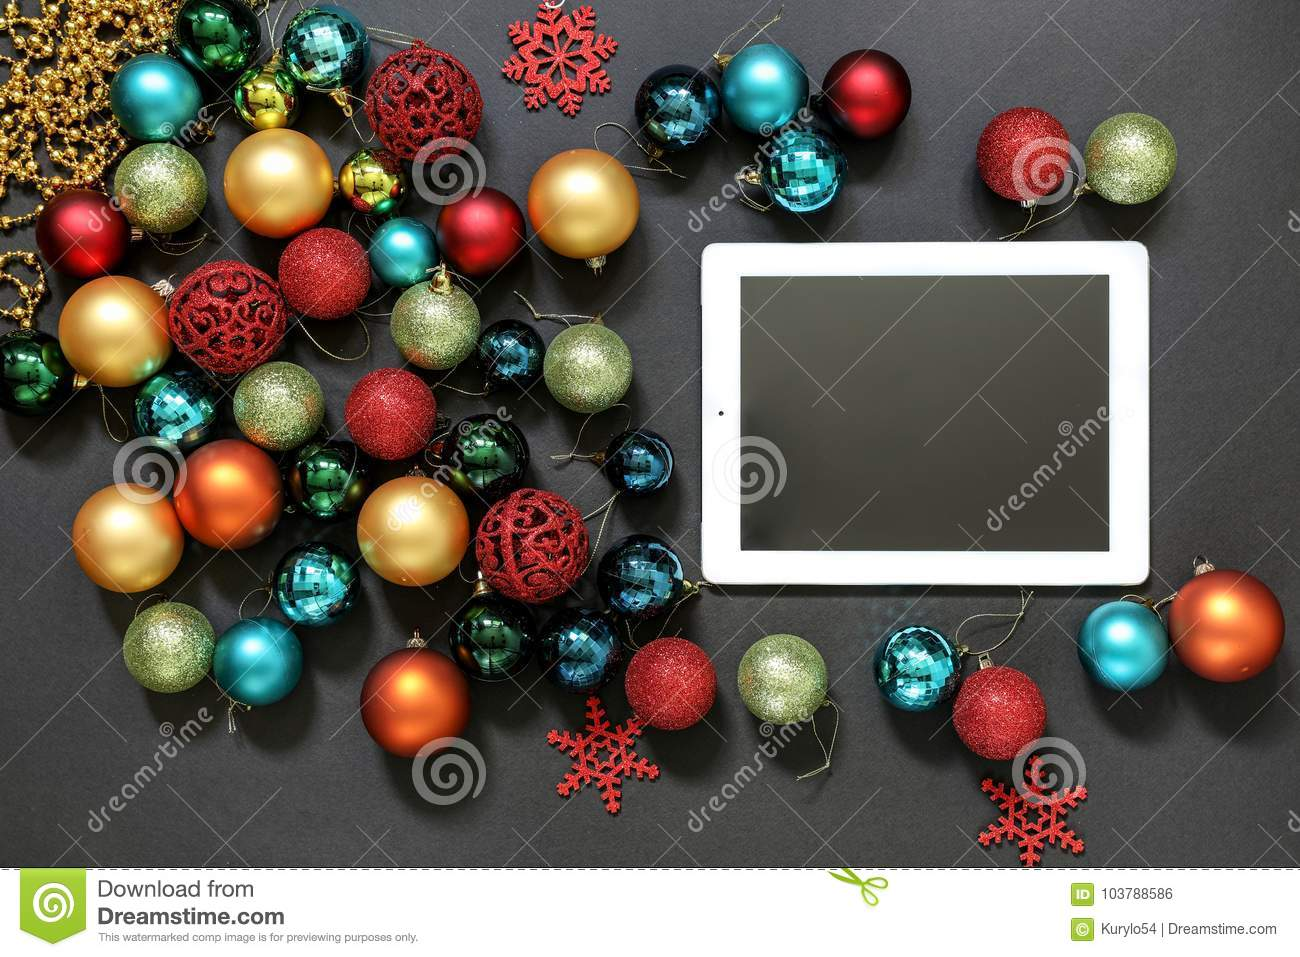 christmas tree toys balls and ipad on dark background